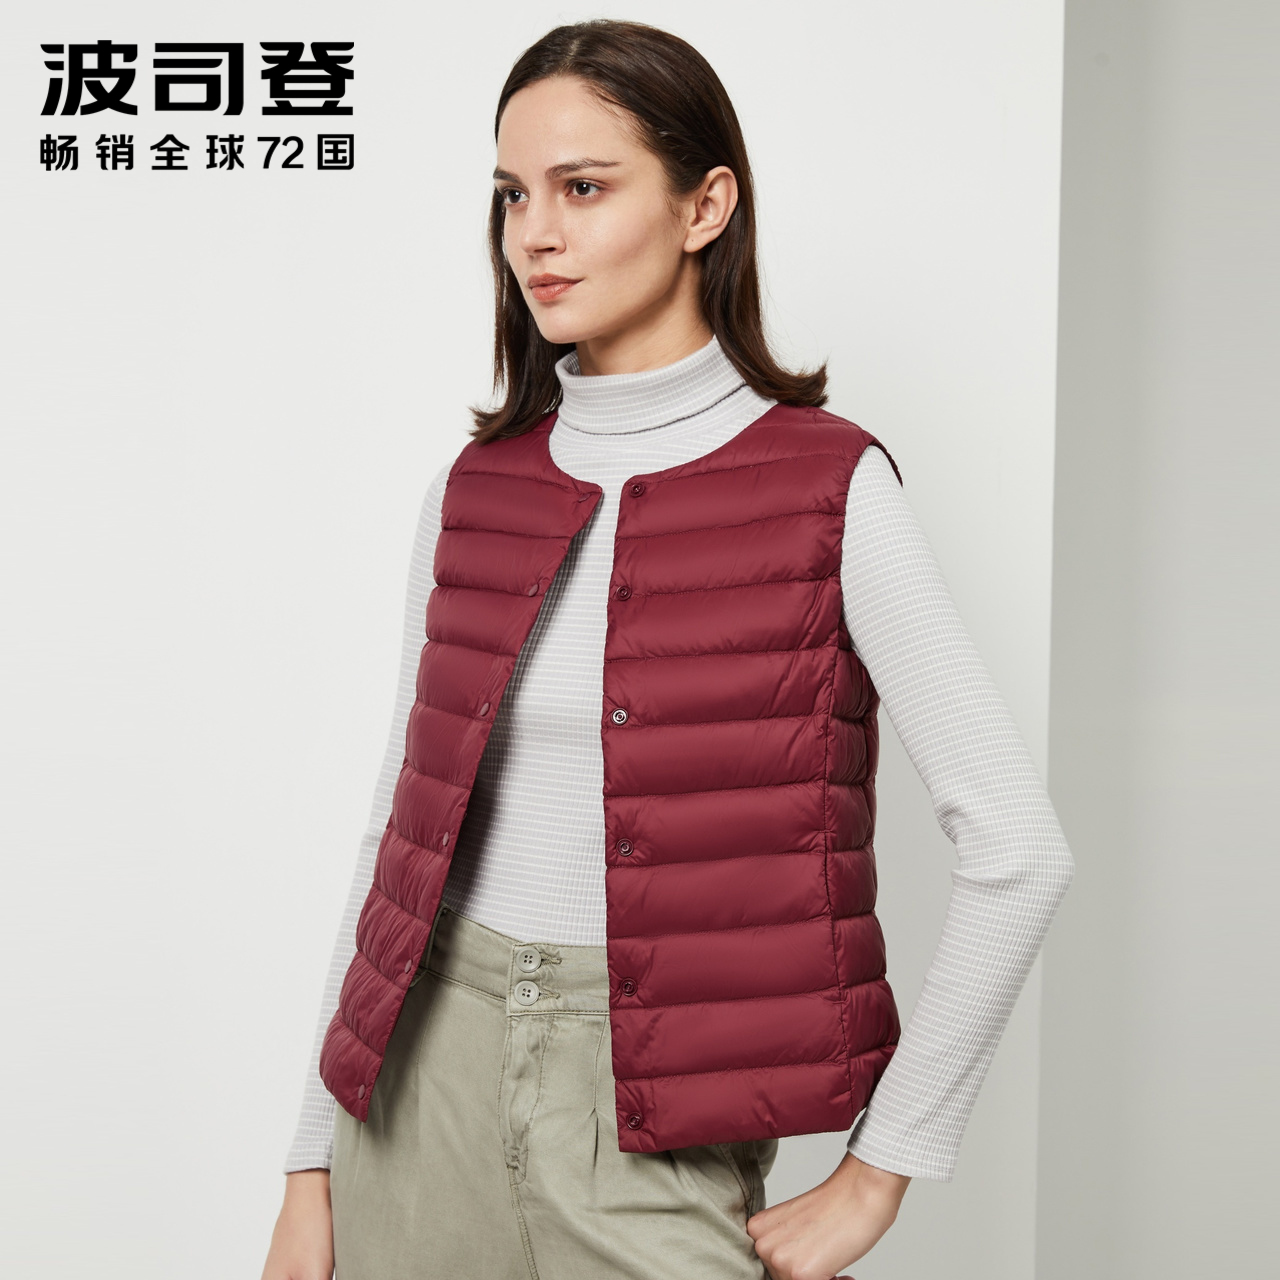 Bosten 2019 New Female Down vest Female Short Autumn and Winter Female vest Horse Clip B90130002